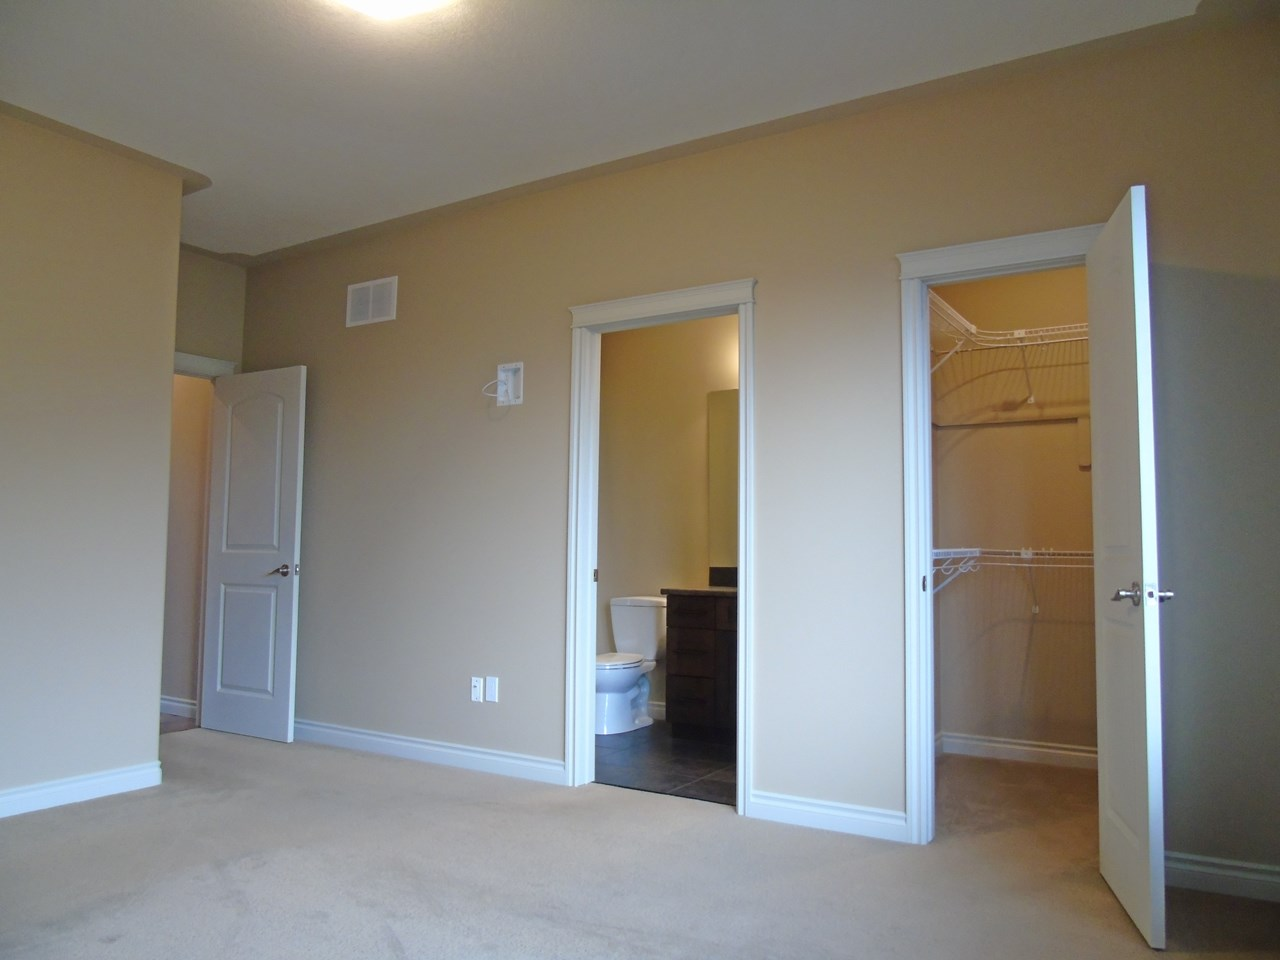 Photo 14: 3621 47 Street: Gibbons House for sale : MLS® # E4074645